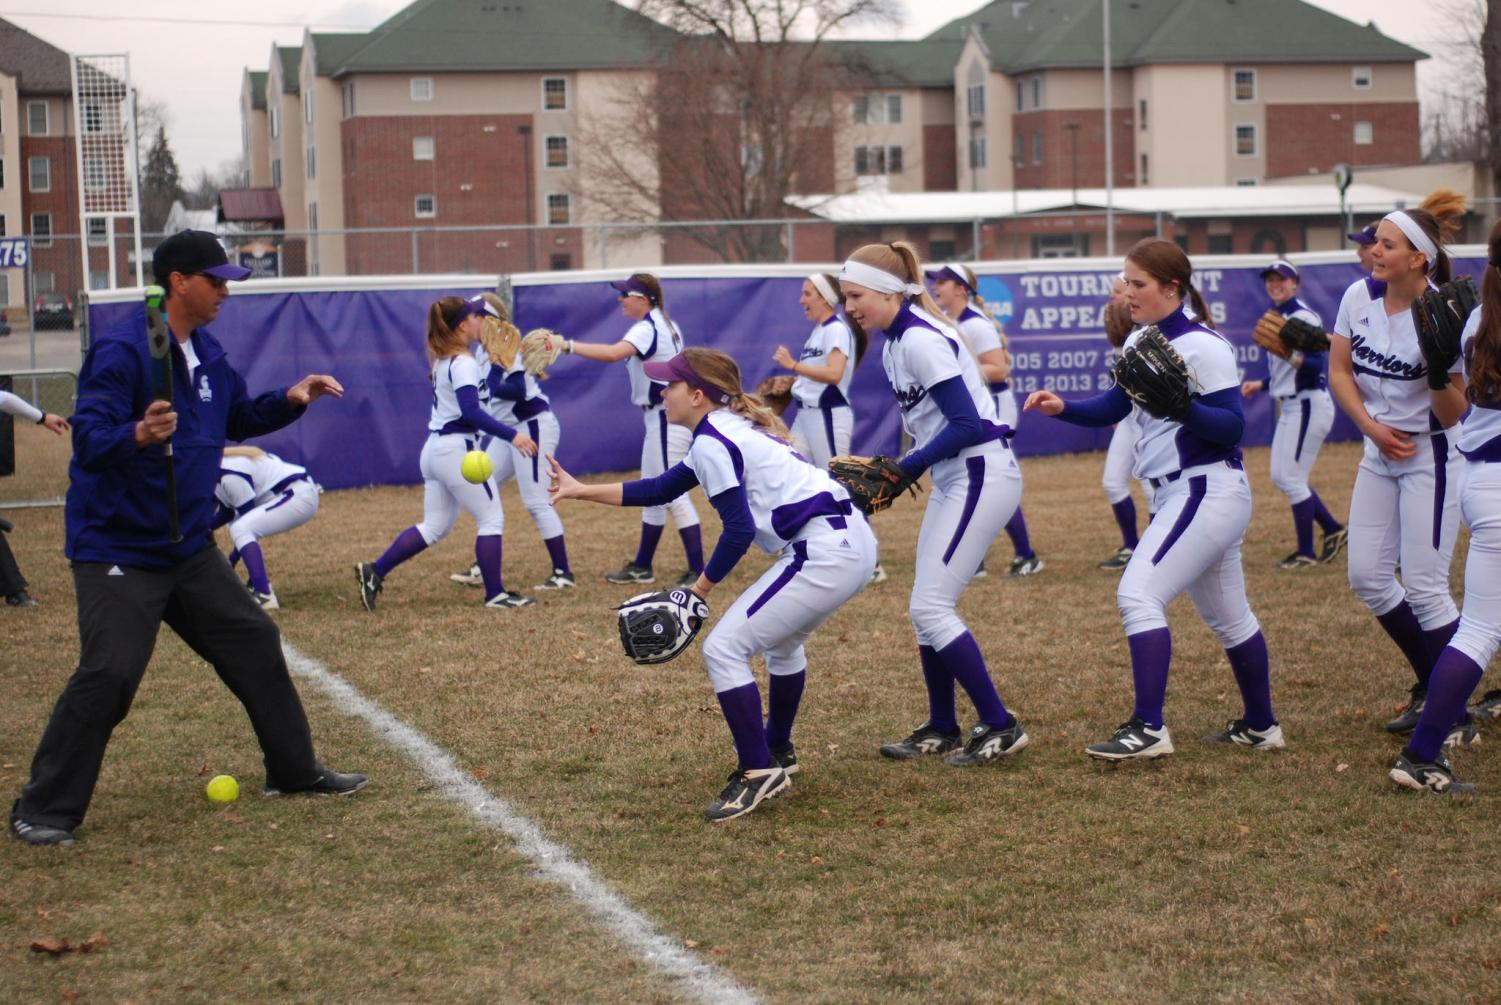 The Winona State Women's Softball Team warm up before a game against St. Cloud State University on Friday, April 12. The Warriors played a double header against the Huskies, loosing their first game 1-3 and coming back with a 3-2 win.